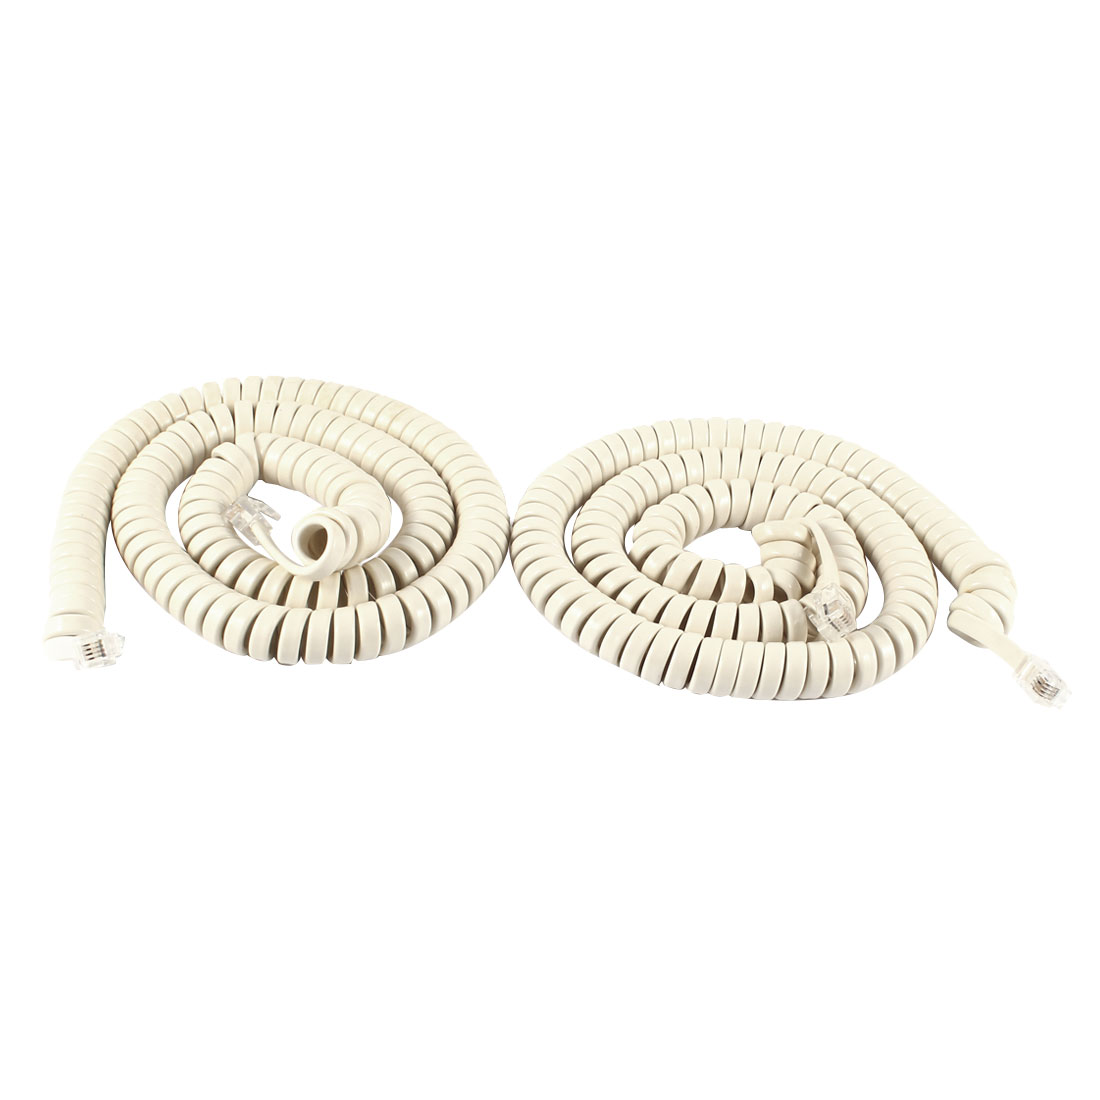 5M RJ9 4P4C Coiled Stretchy Telephone Handsets Cable Line White